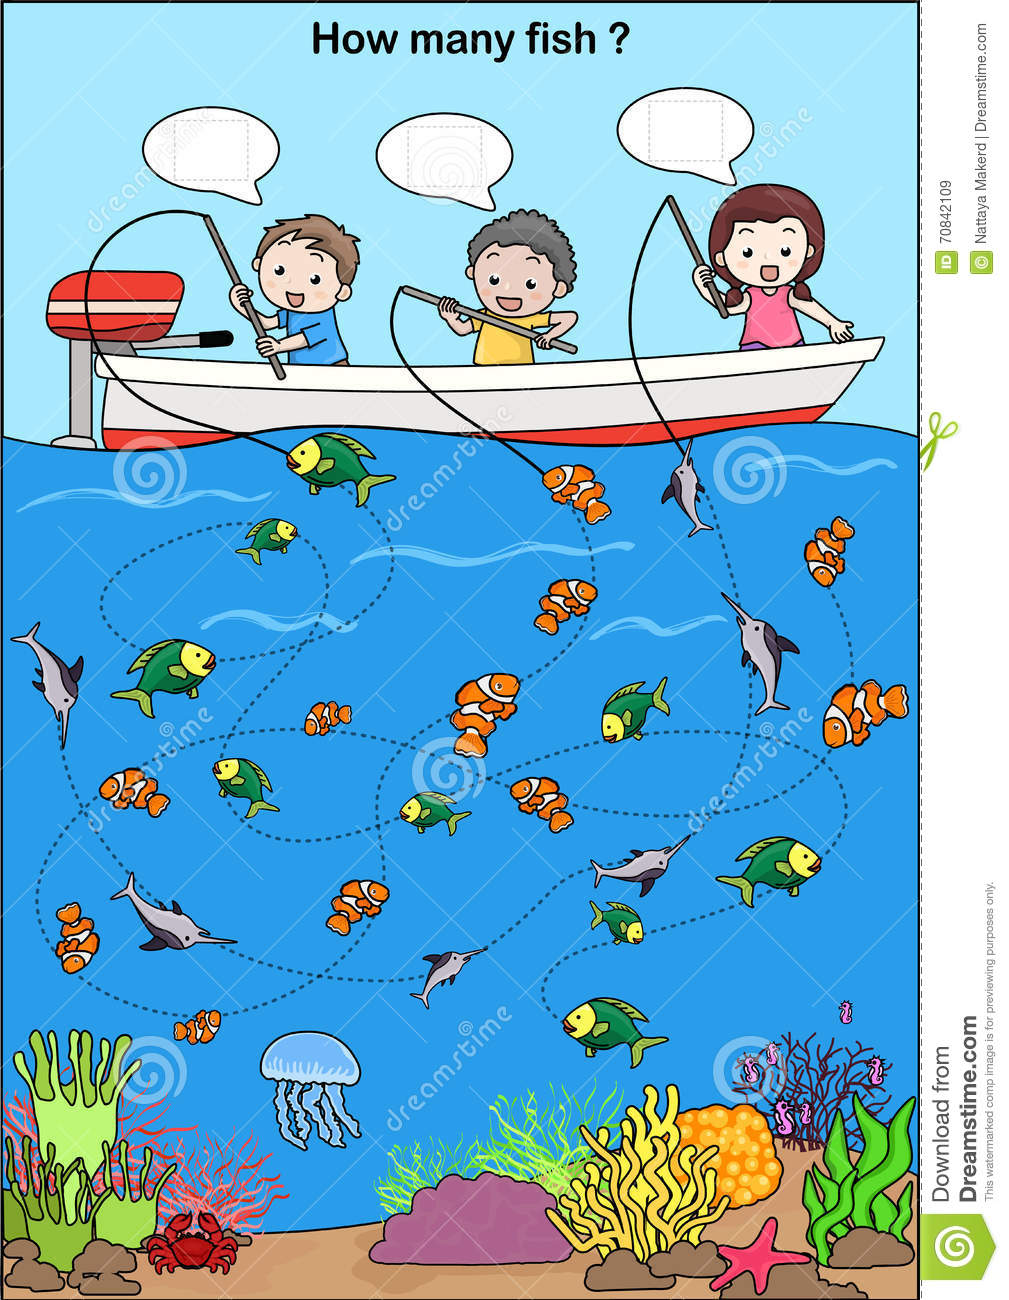 Worksheet For Education - Counting Fish Stock Vector - Illustration ...